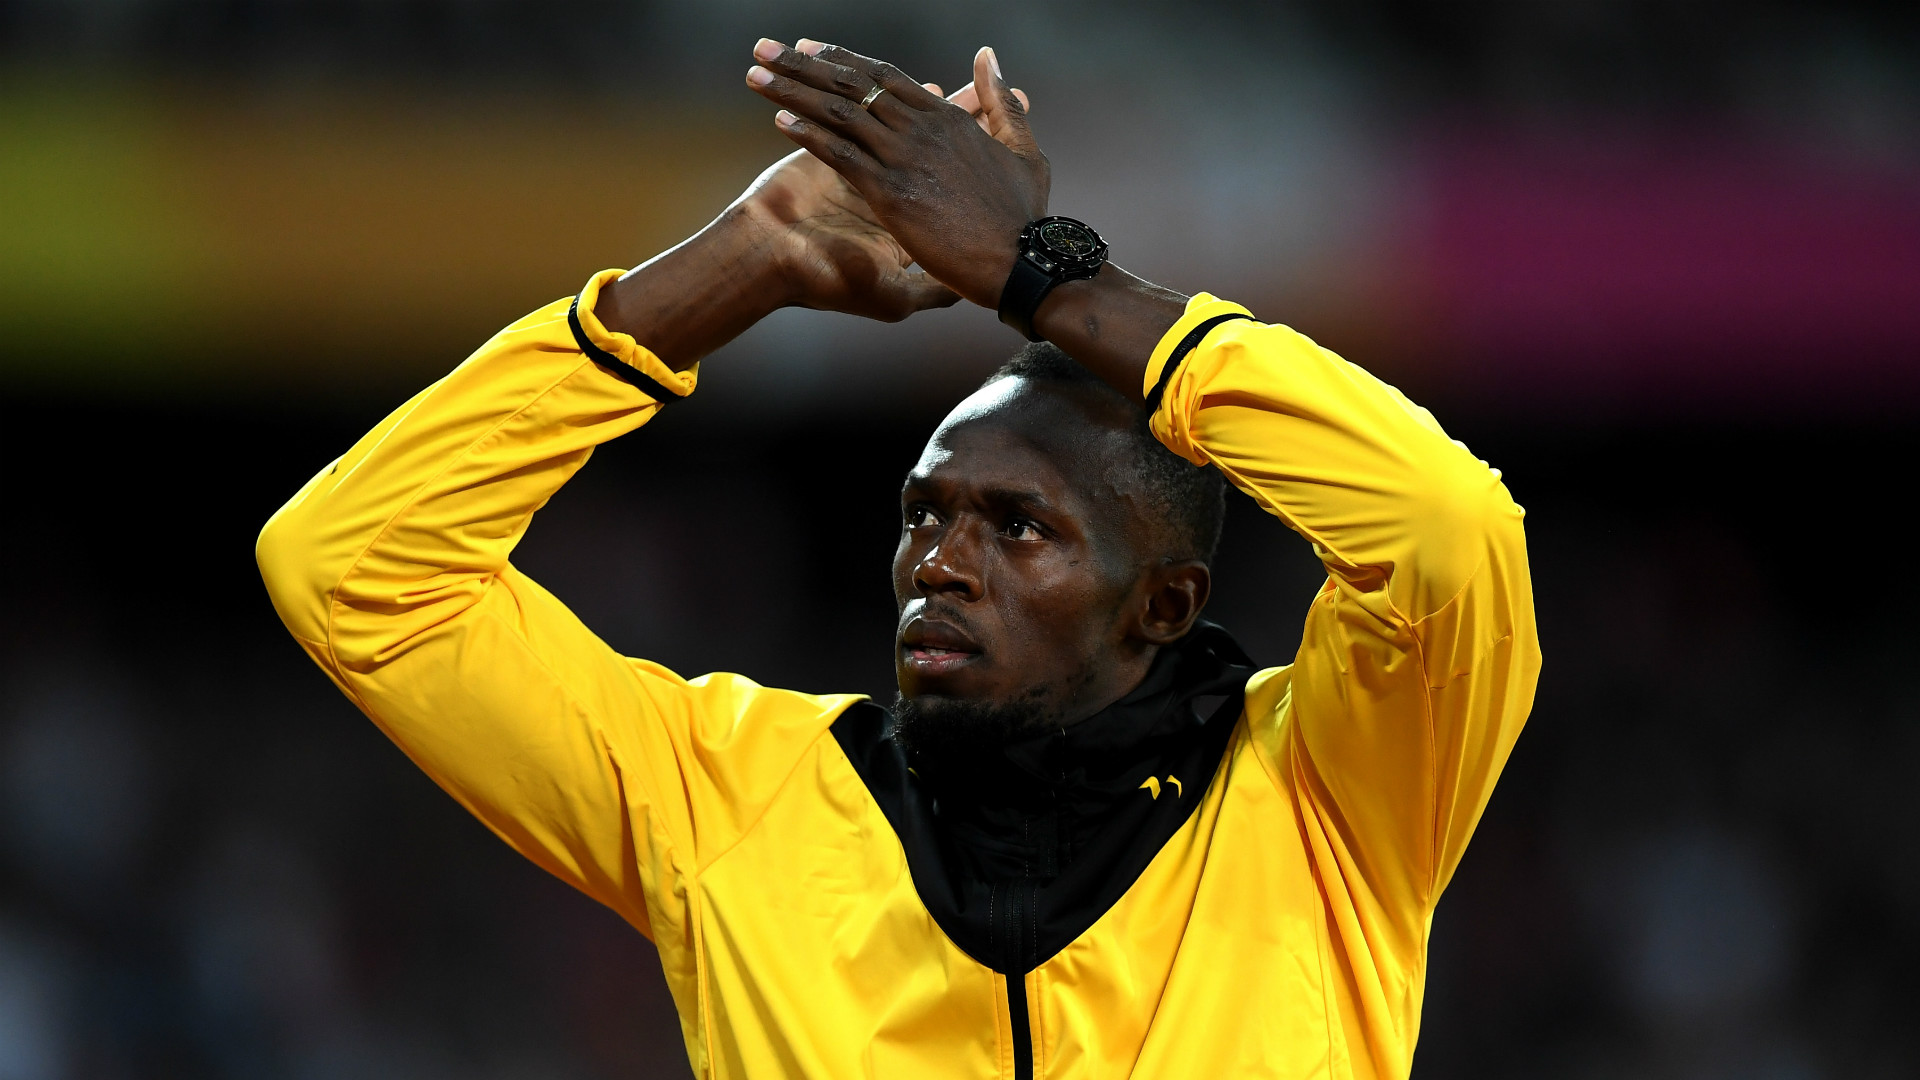 Usain Bolt Is Hanging up His Spikes for a Pair of Cleats